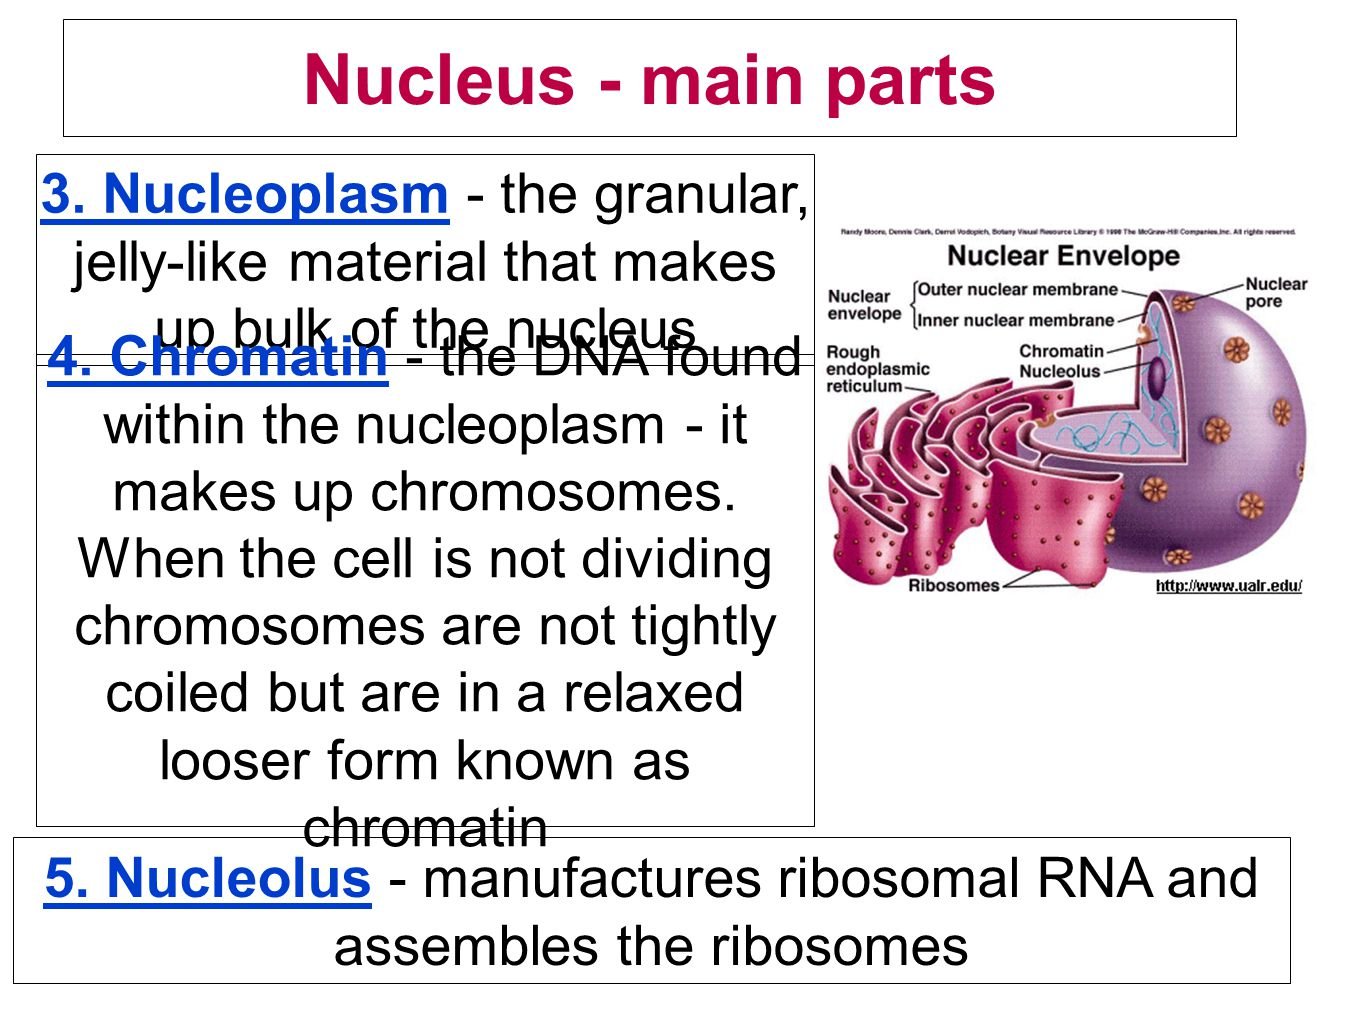 Nucleus - main parts 3. Nucleoplasm - the granular, jelly-like material that makes up bulk of the nucleus 4. Chromatin - the DNA found within the nucl